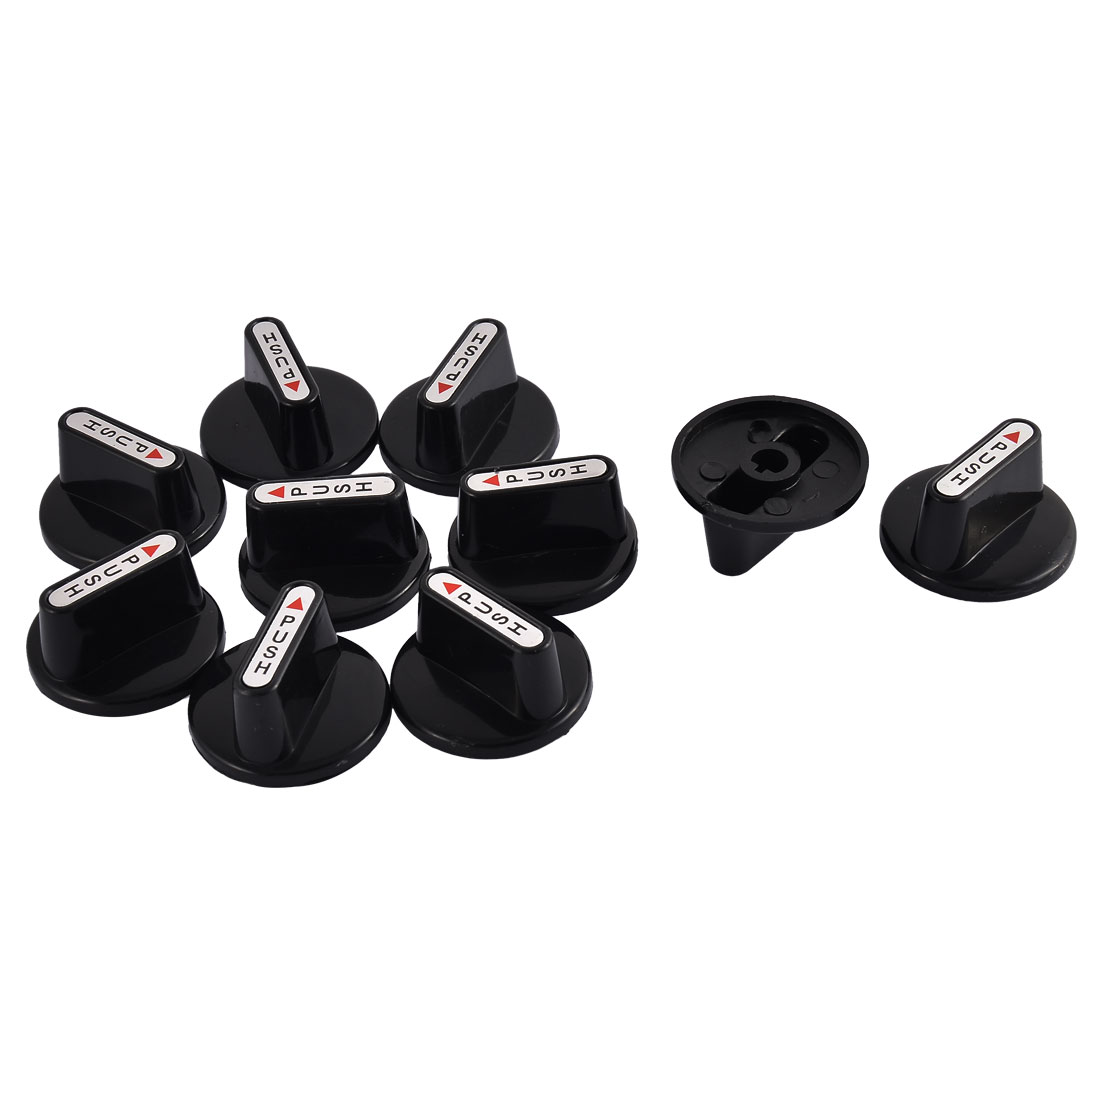 Kitchenware Gas Stove Cooker Plastic Rotary Switch Range Handle Knob Black 10pcs